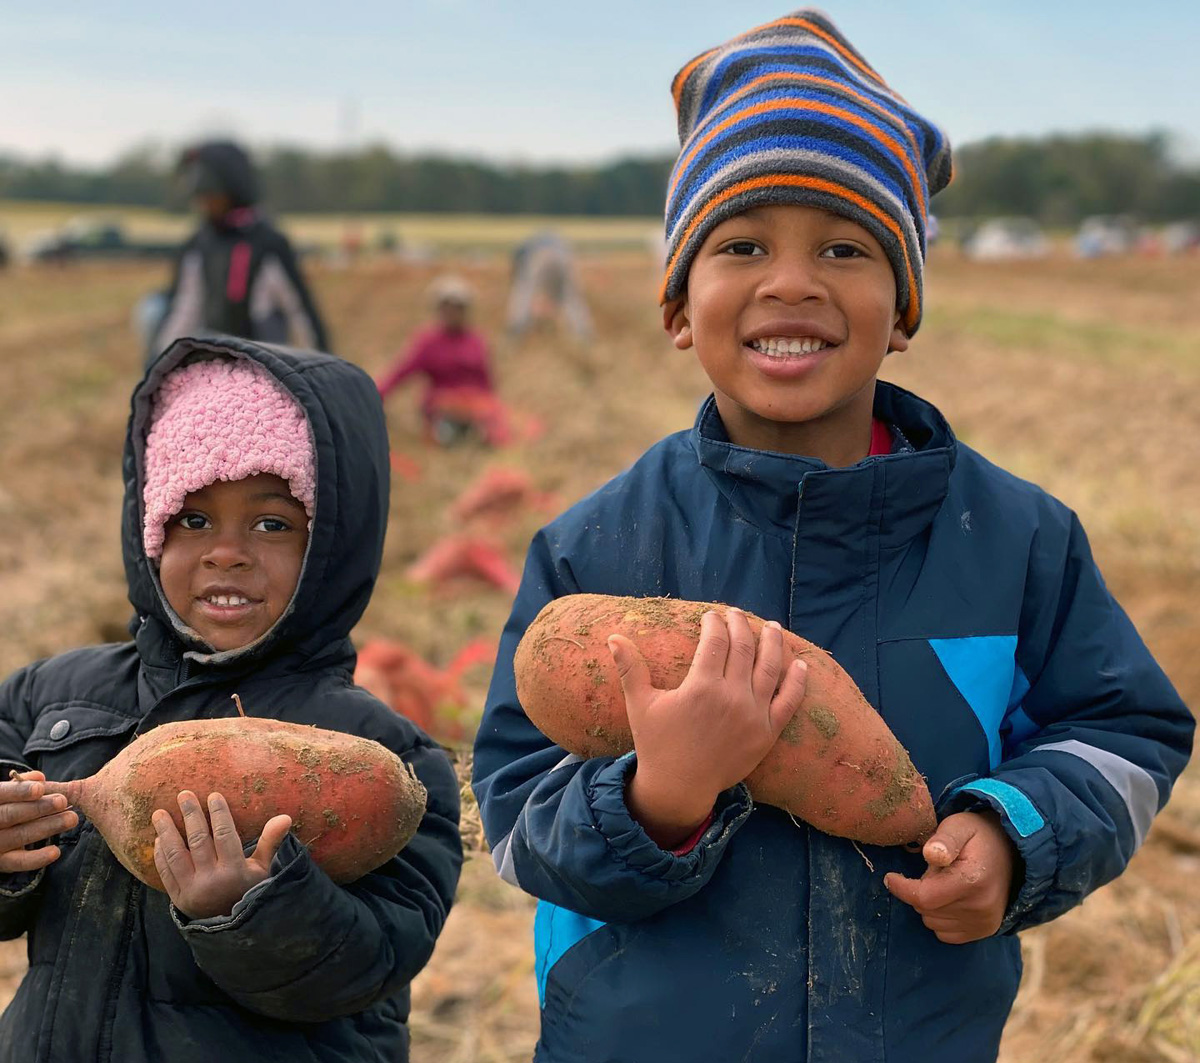 Olivia (left) and Judah Brown hold sweet potatoes at First Fruits Farm in Louisburg, N.C. Owned by their parents Jason and Tay Brown, the farm supplies produce to Society of St. Andrew, which is helping get food to needy citizens. Photo courtesy of the Browns.